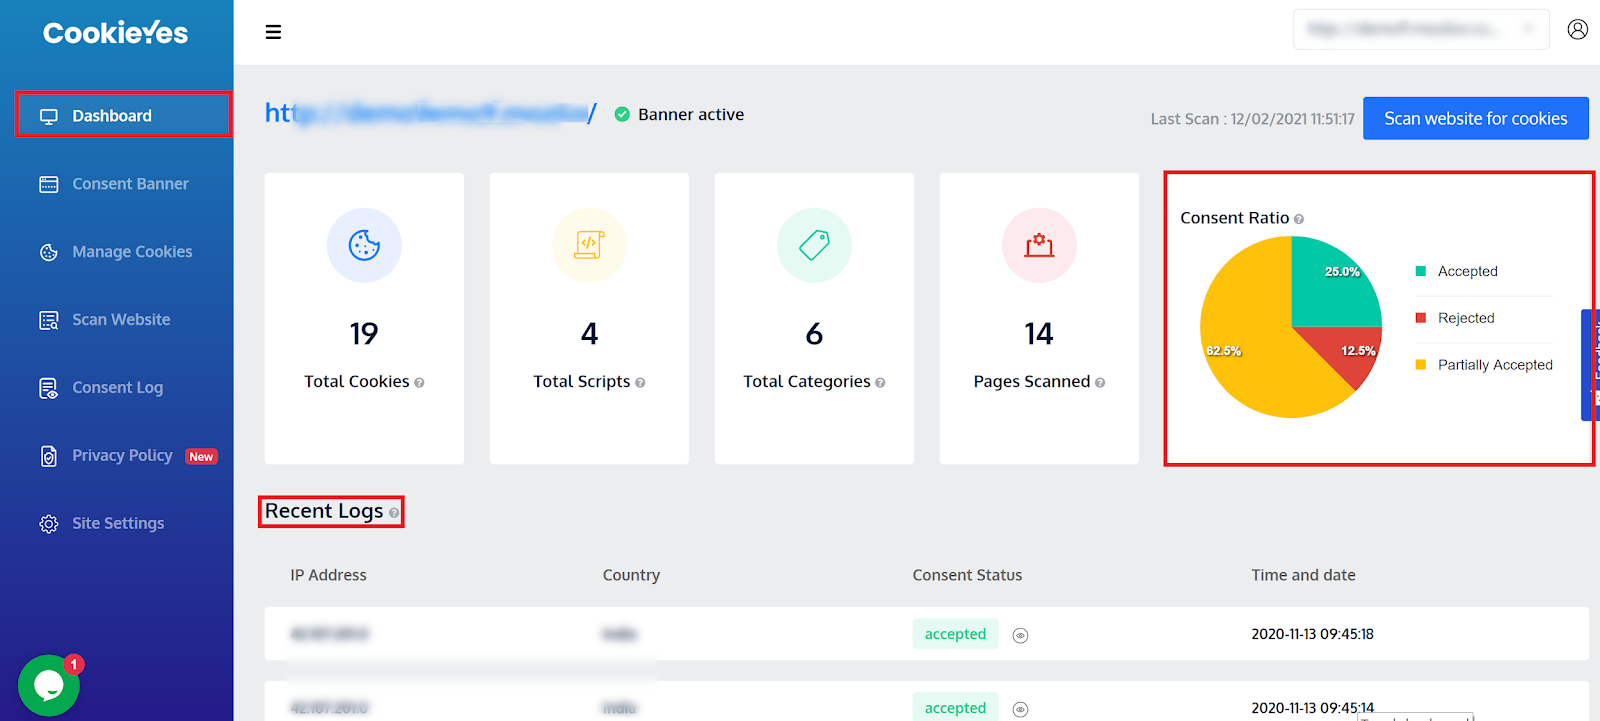 CookieYes cookie consent dashboard